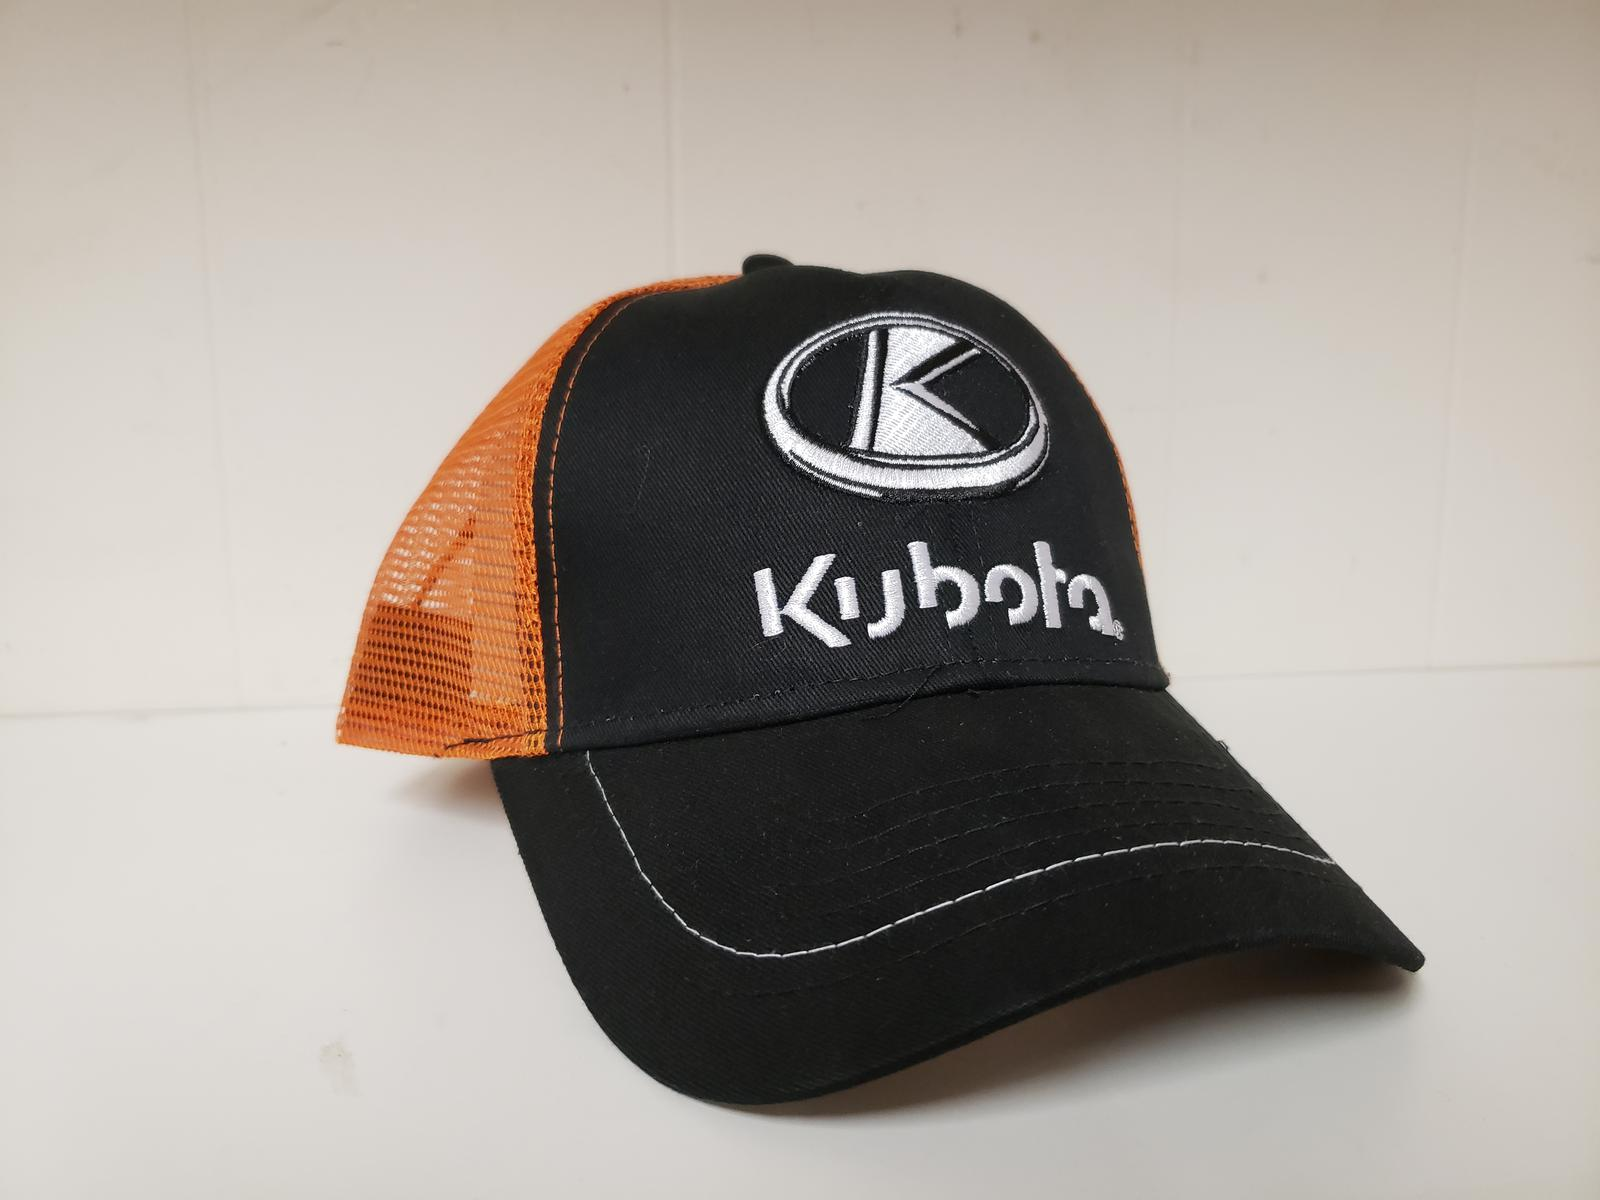 a2e14987a30 Kubota Black and Orange Hat for sale in Quincy